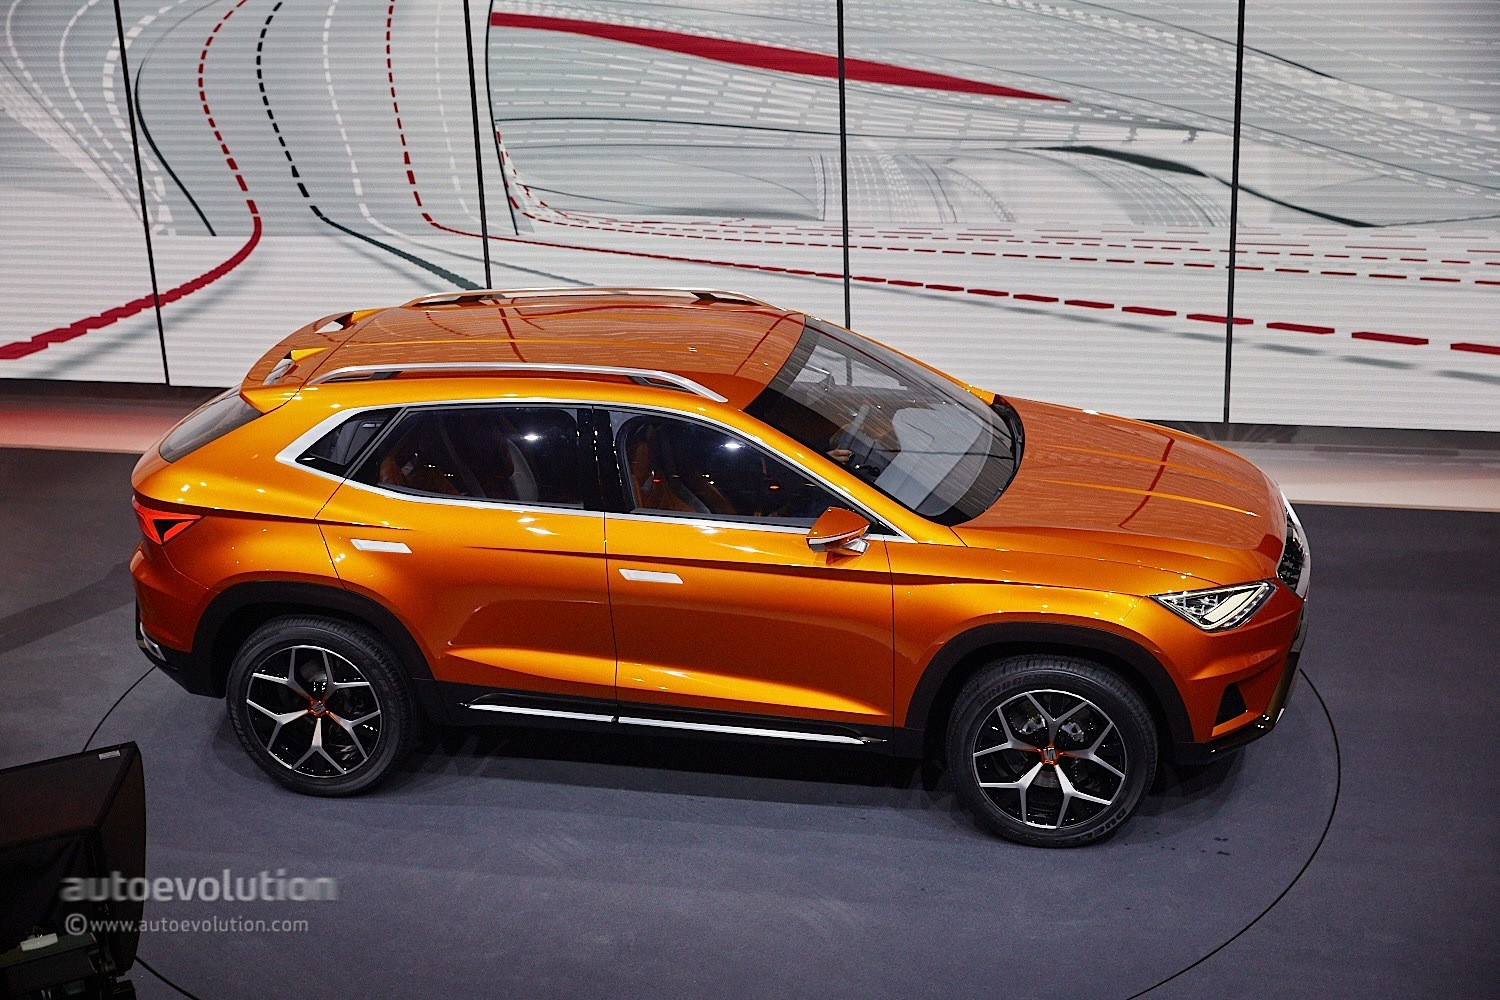 SEAT Prostyle SUV Will Be the First of 4 New Models Coming ...